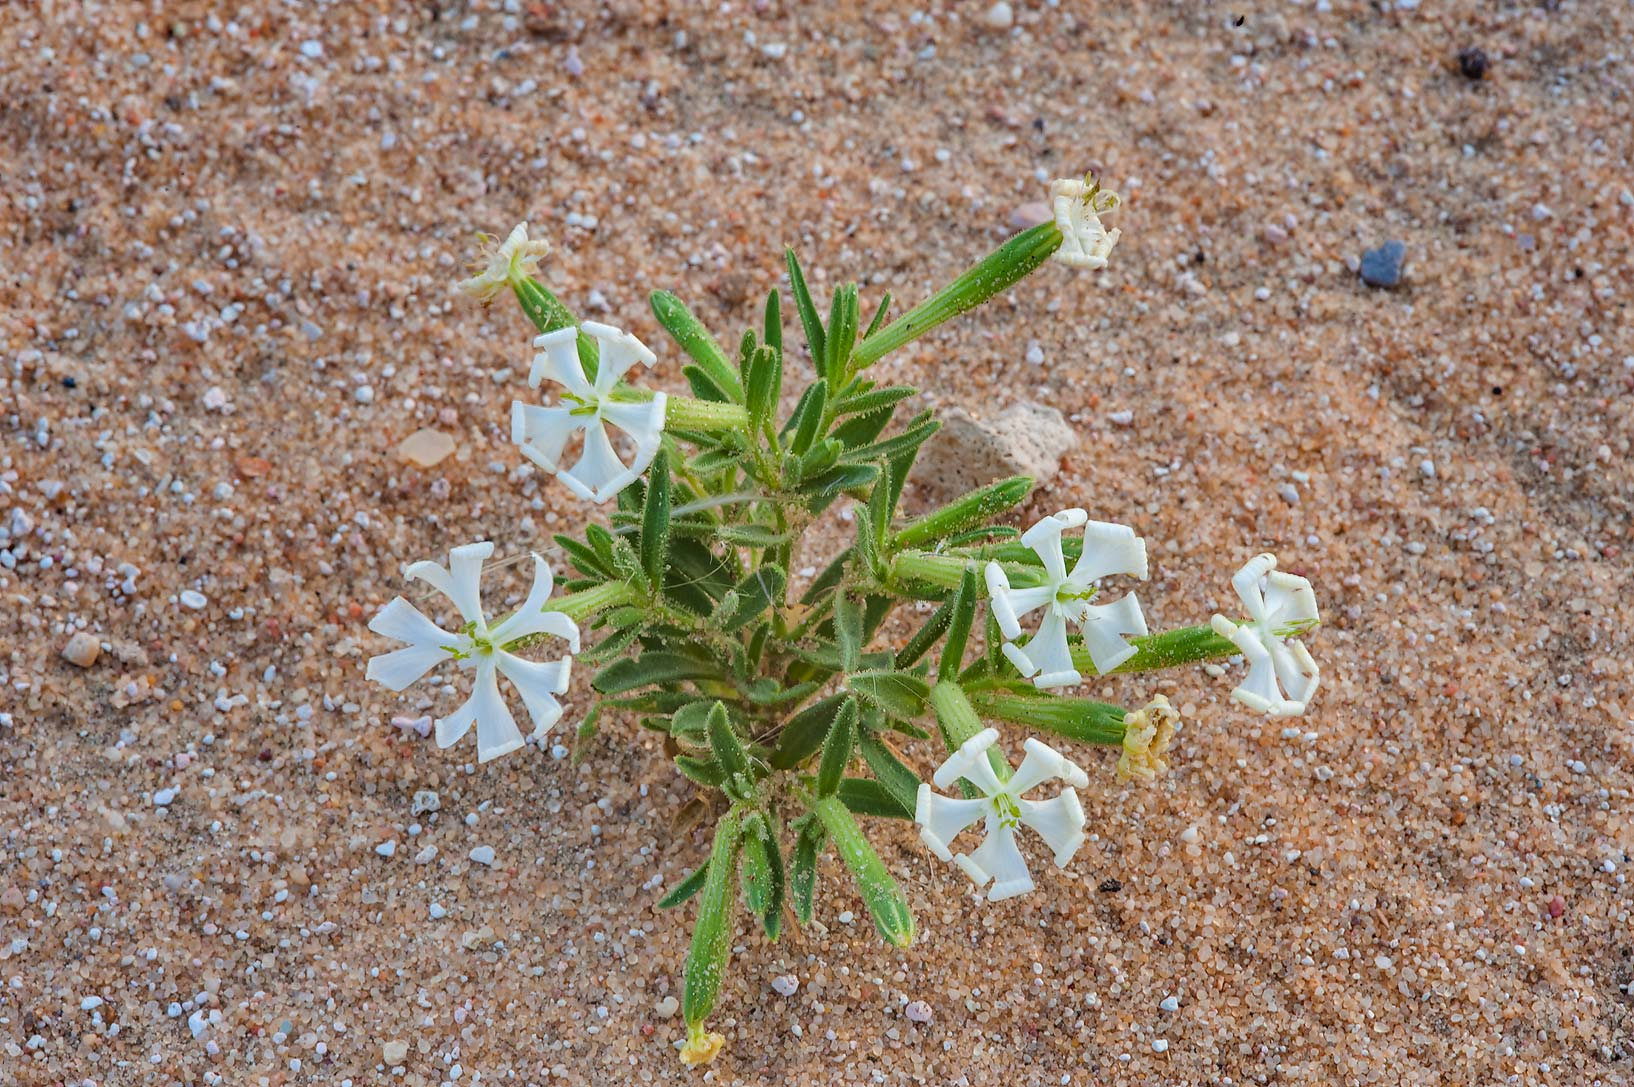 Small blooming plant of Desert Campion (Silene...of Khashem Al Nekhsh. Southern Qatar